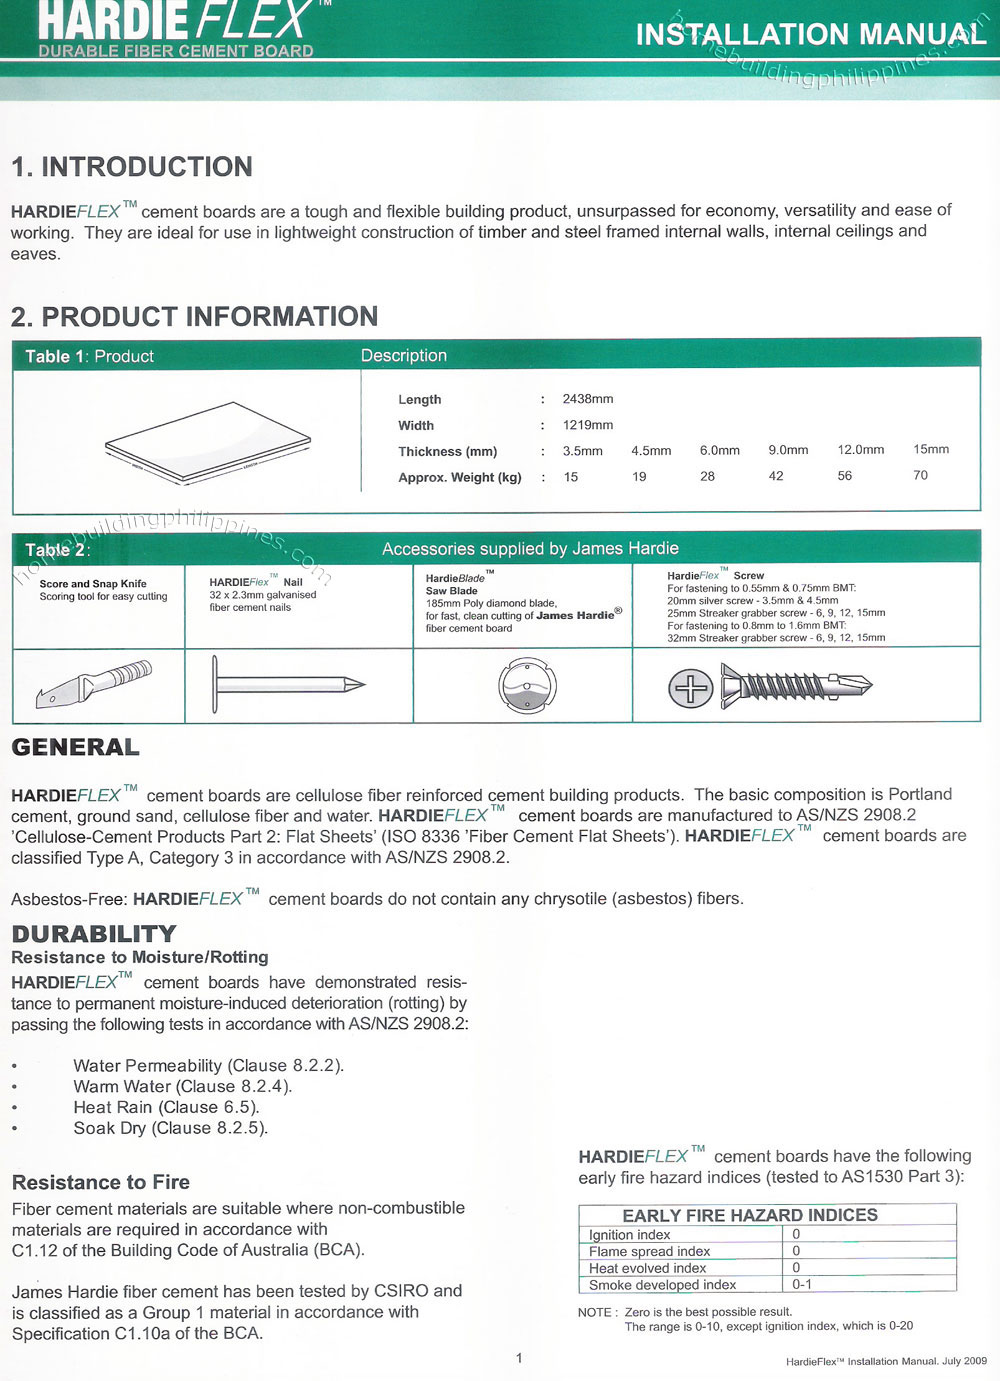 Hardieflex Durable Fiber Cement Board Installation Manual